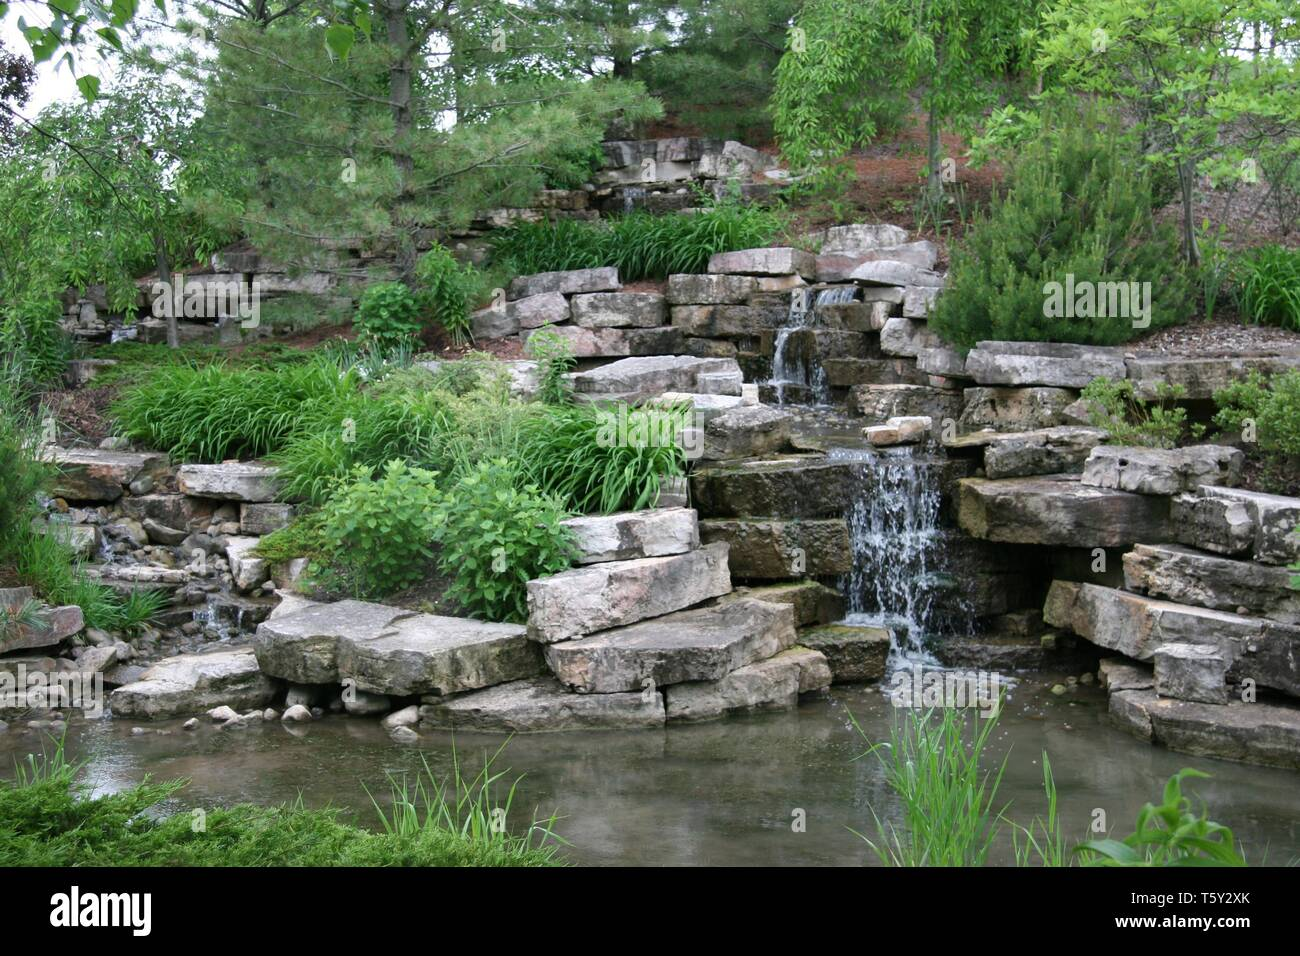 Frederik Meijer Gardens, Grand Rapids, Michigan - Stock Image